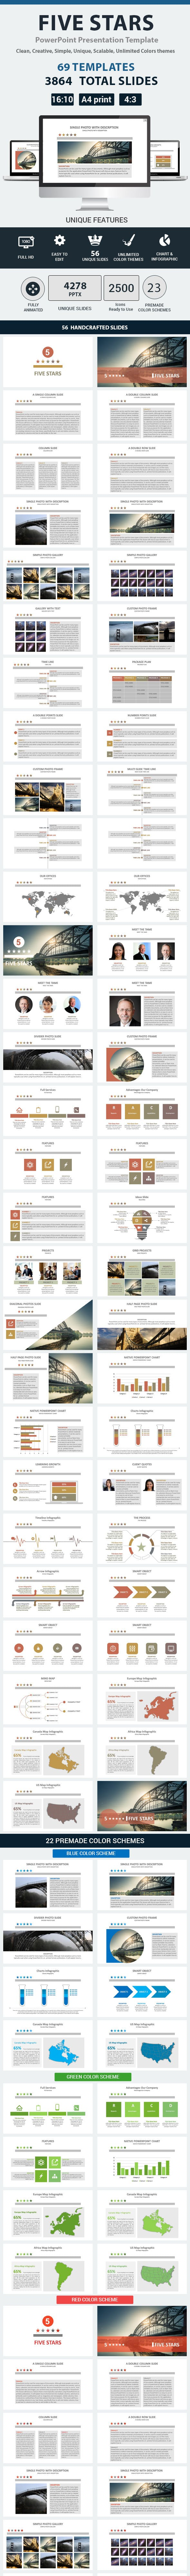 five stars powerpoint presentation template by rainstudio graphicriver